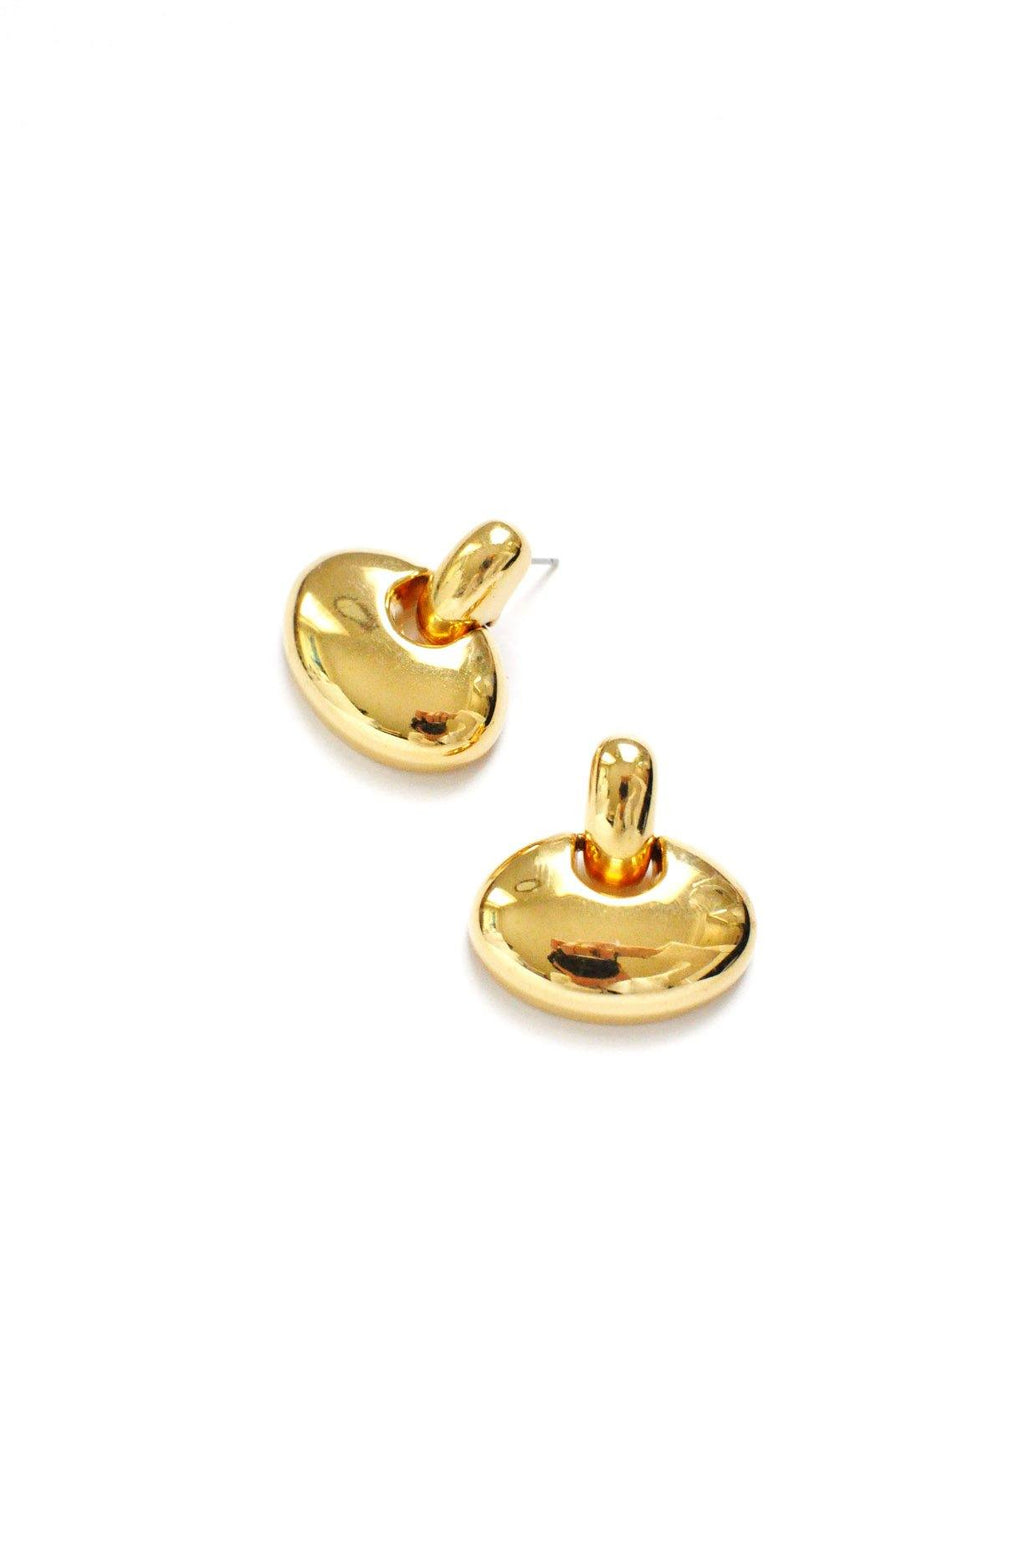 Gold Door Knocker Pierced Earrings